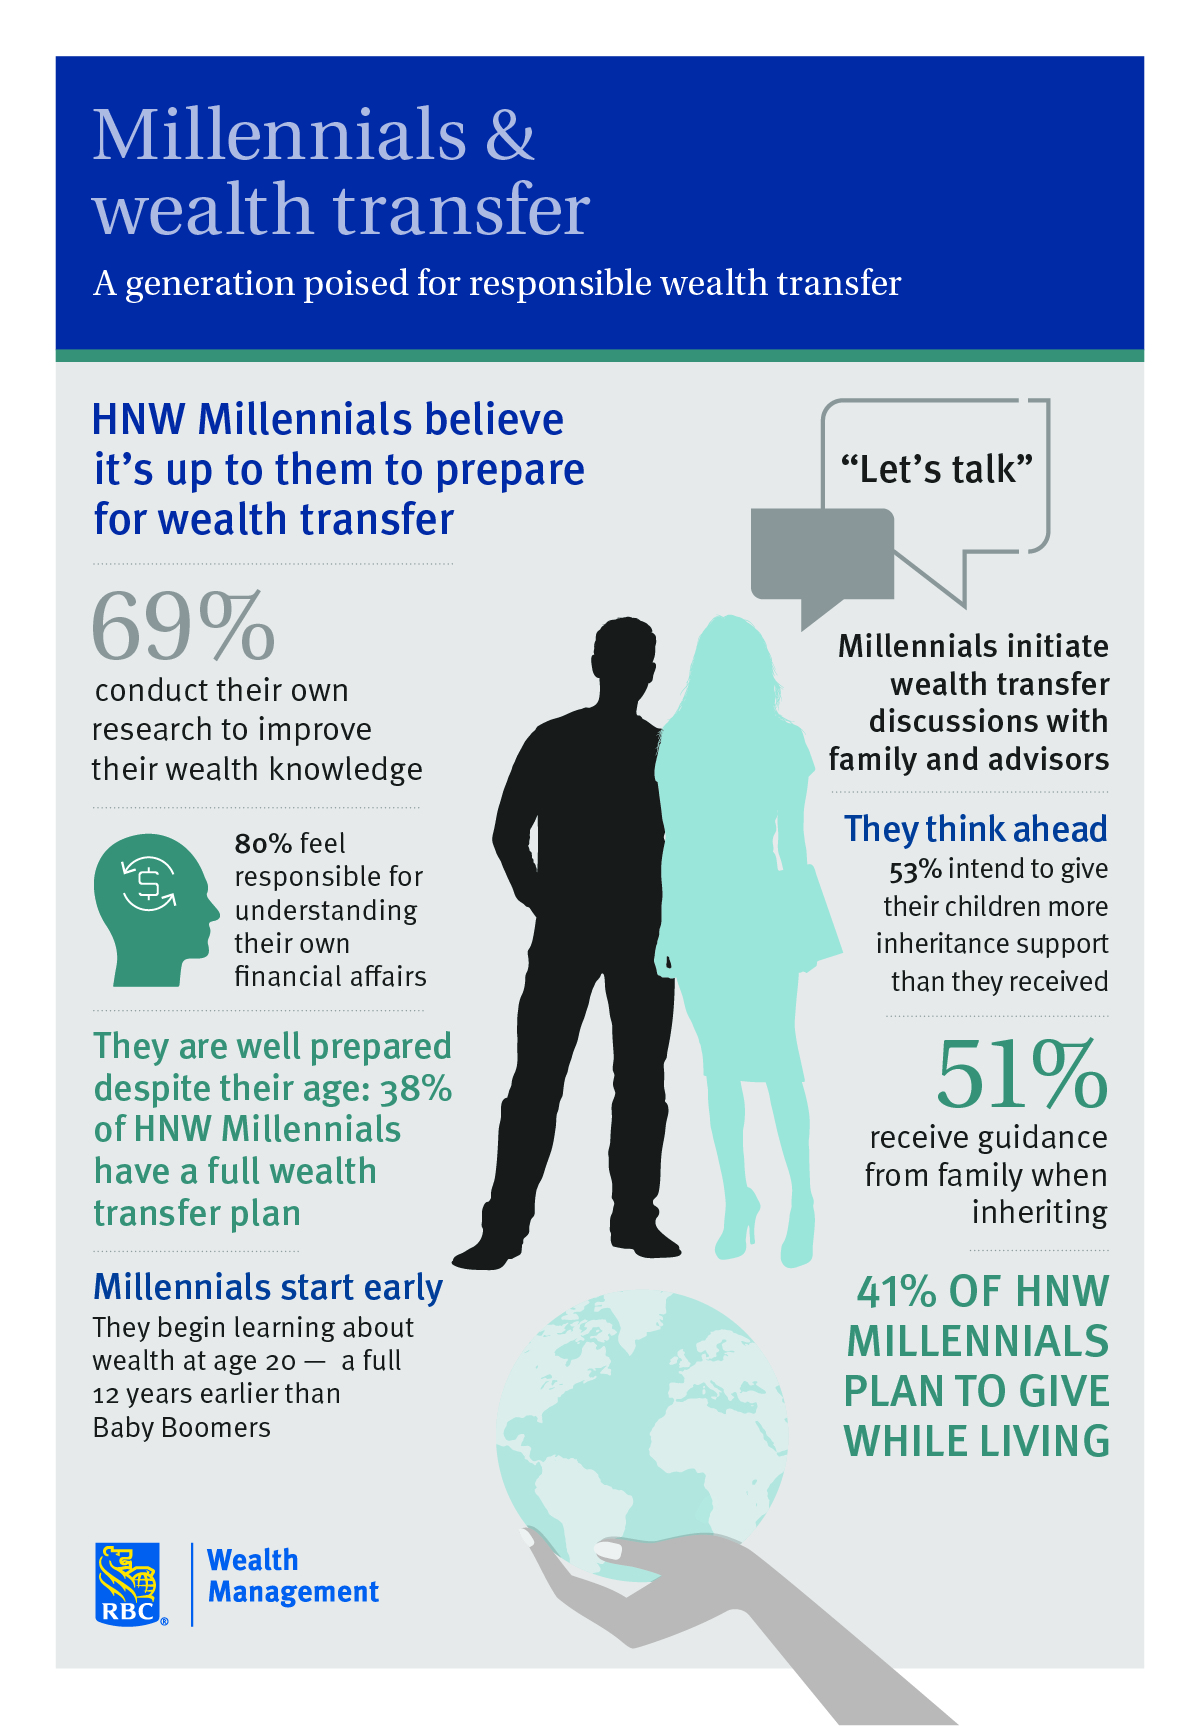 Millennials-Wealth-Transfer-RBC-Infographic